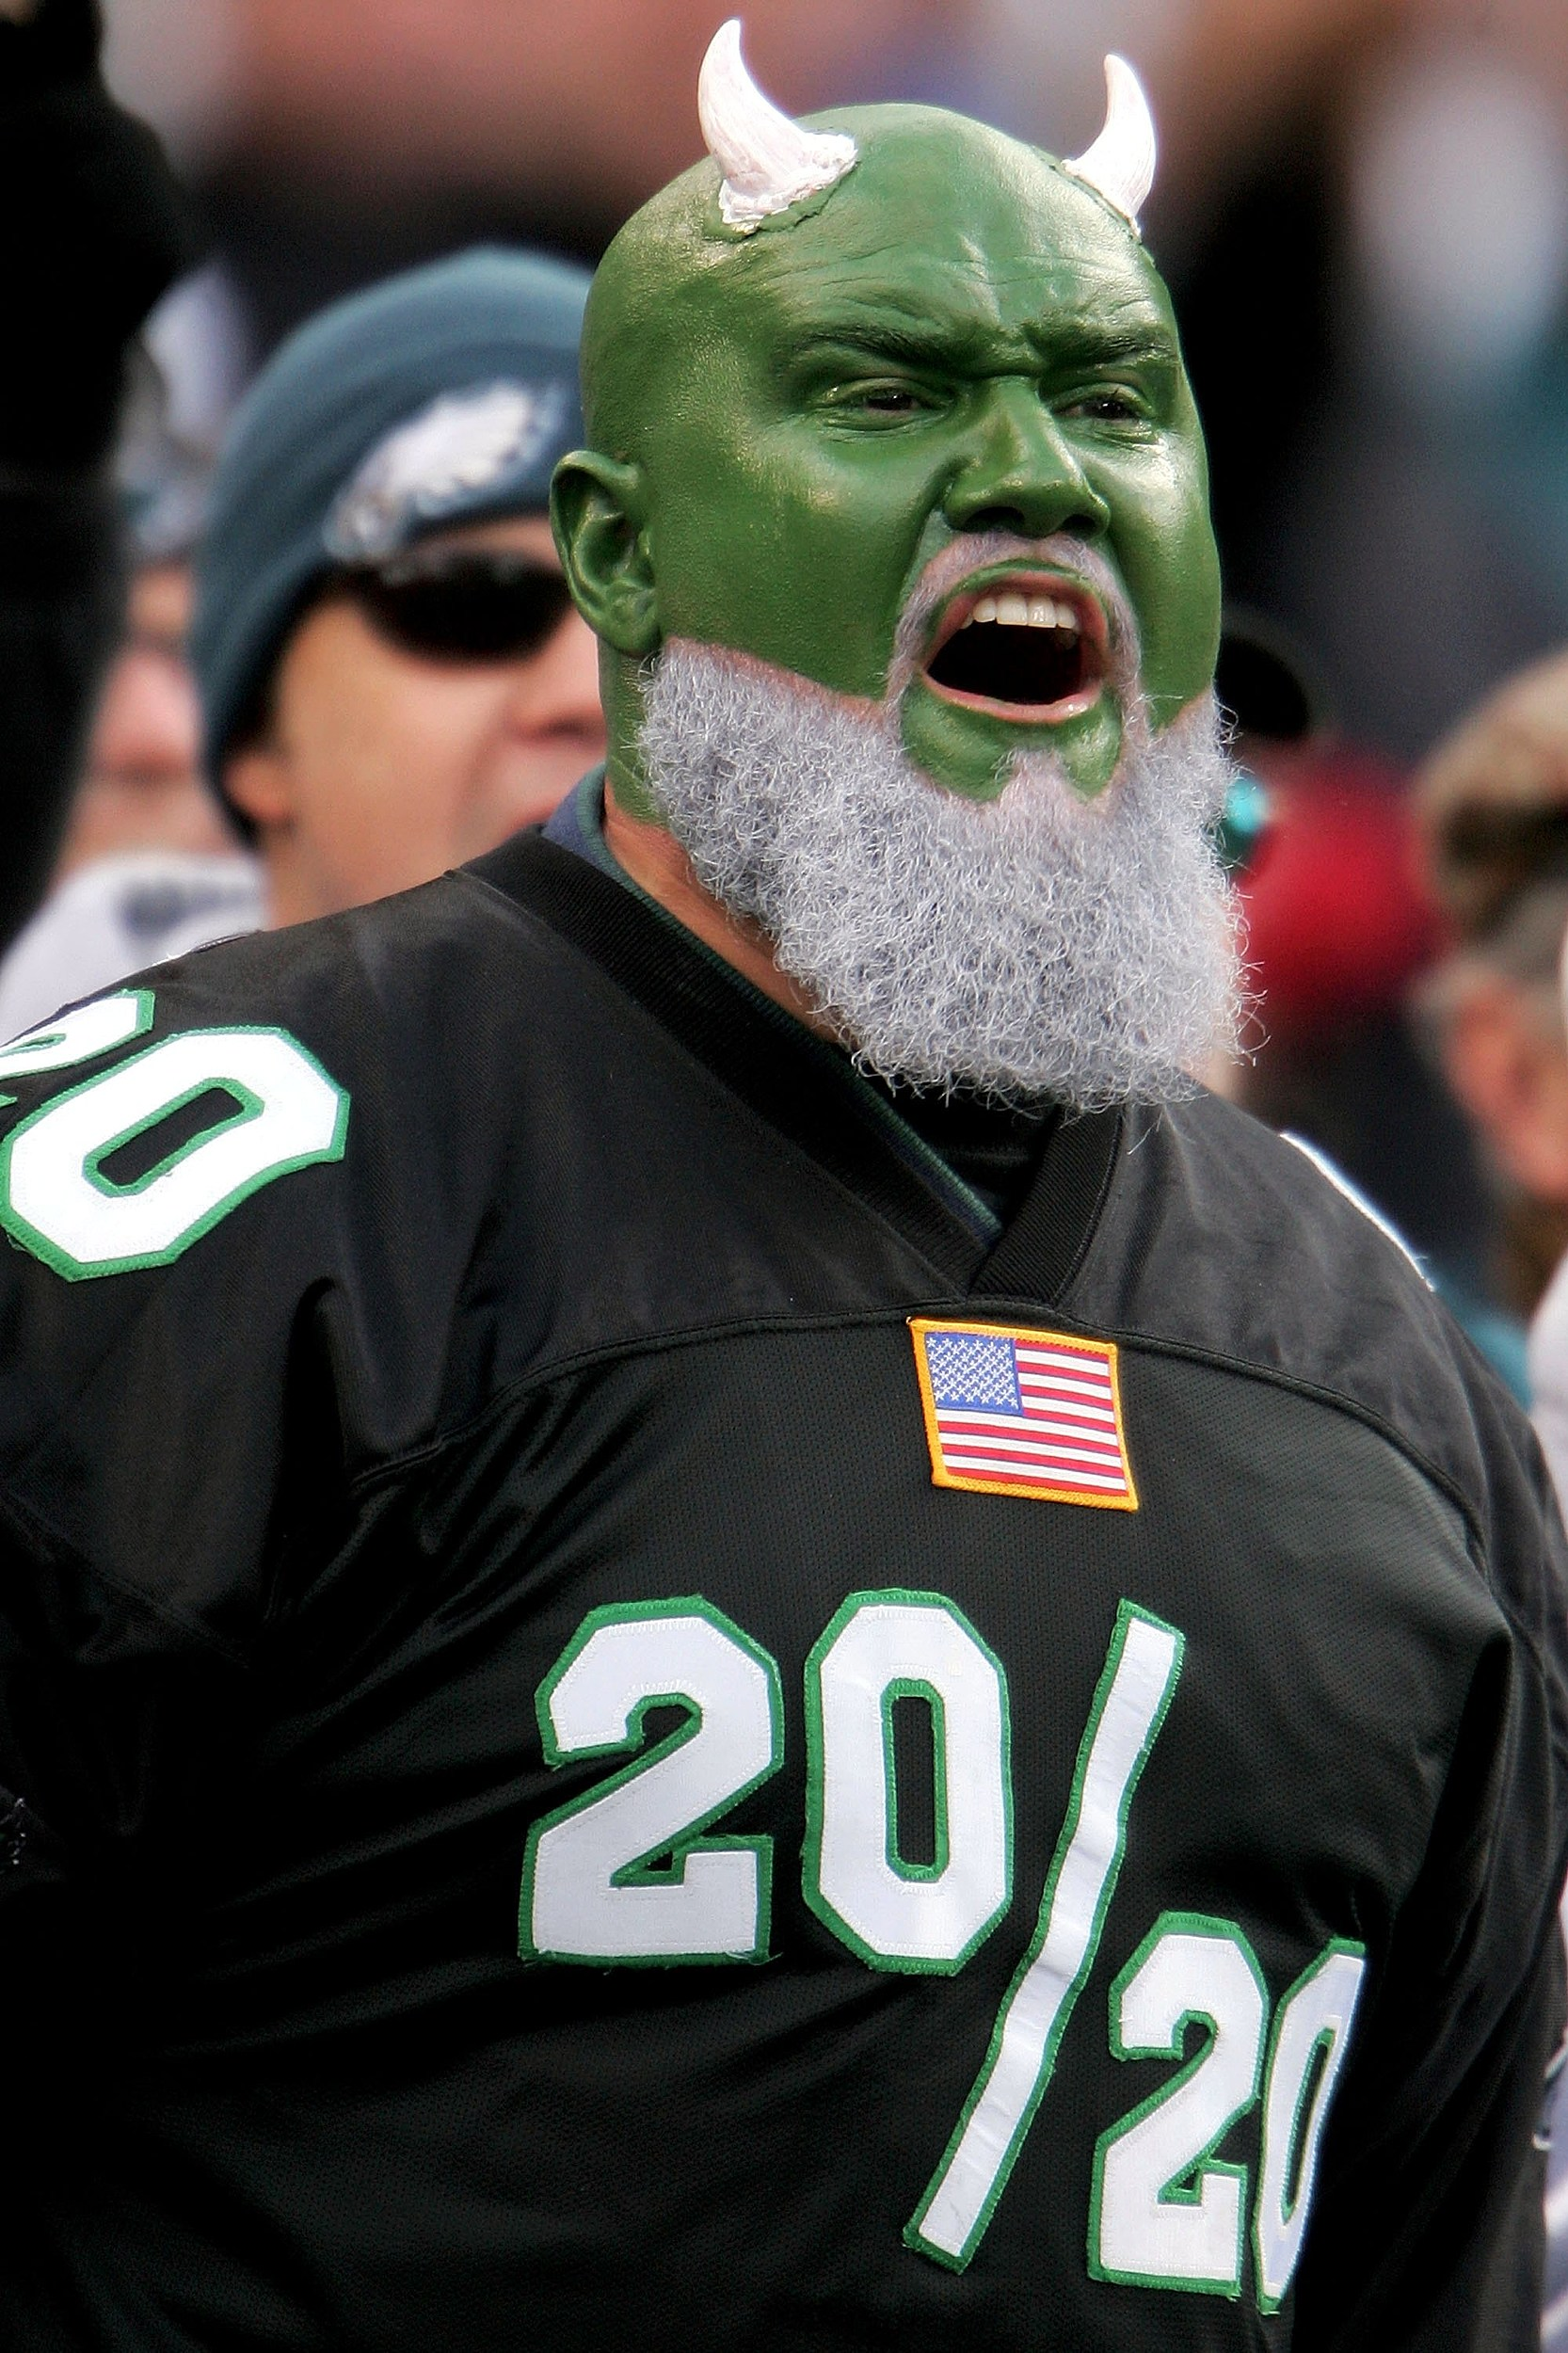 Philadelphia Eagles Lawsuit Do Pro Sports Teams Do Enough To Protect The Fans Poll